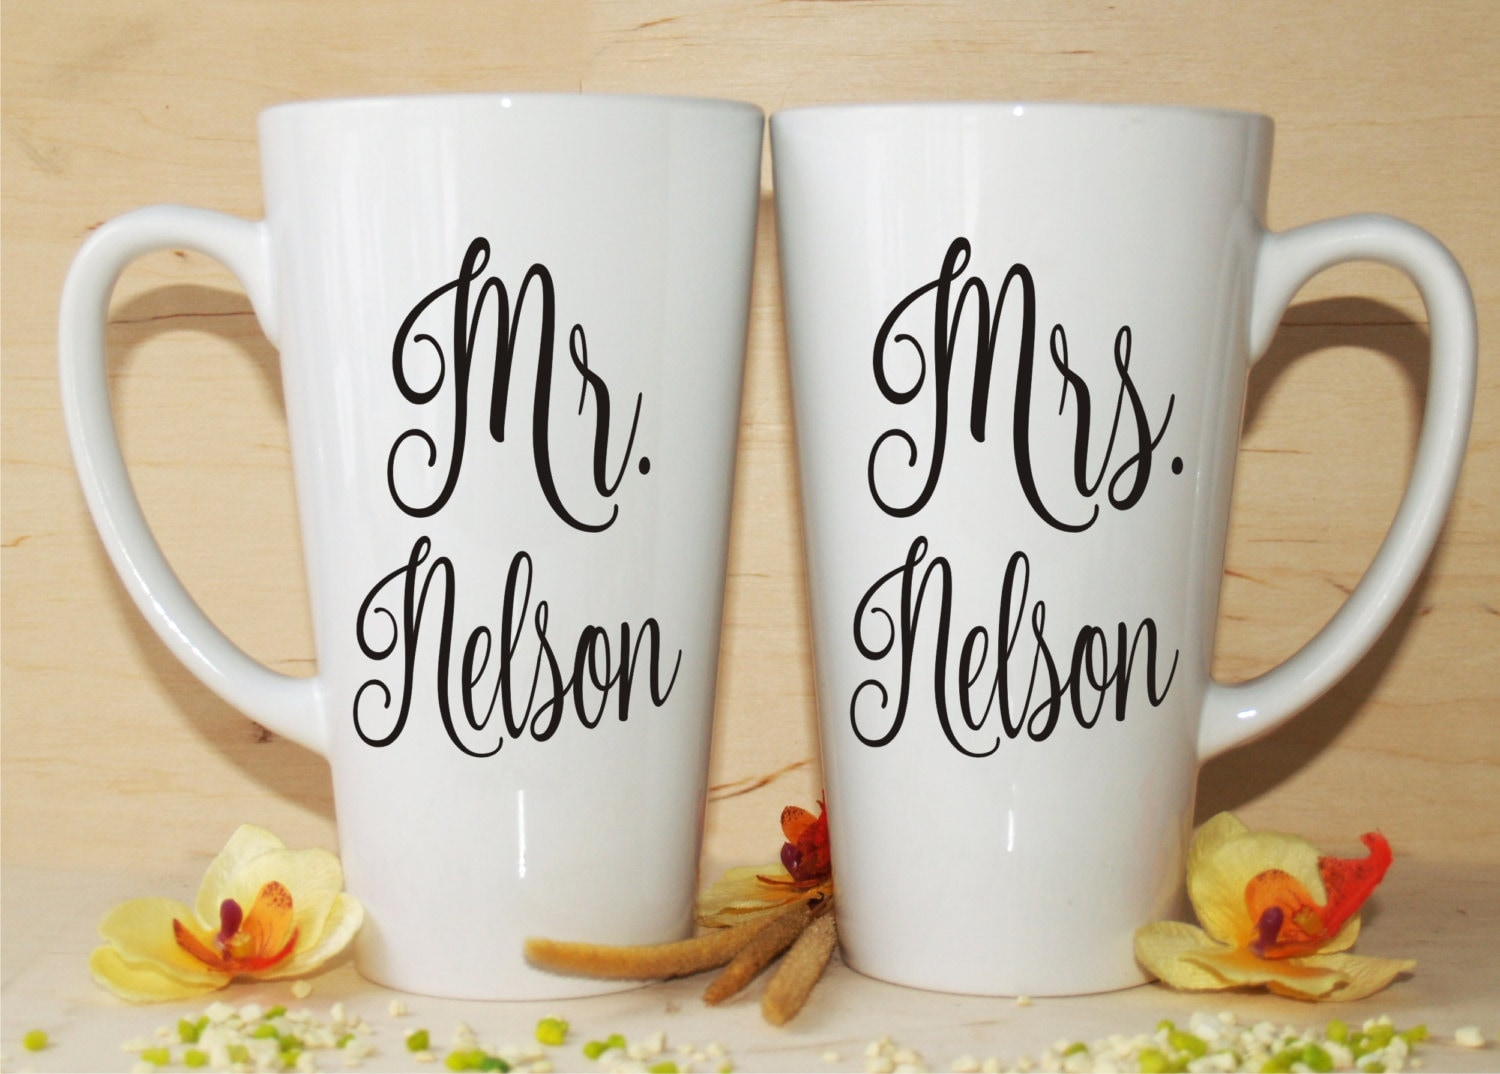 Wedding Gift Mugs Suggestions : Mr Mrs mug-Bridal shower gift-Wedding mugs-Anniversary gift-Mr